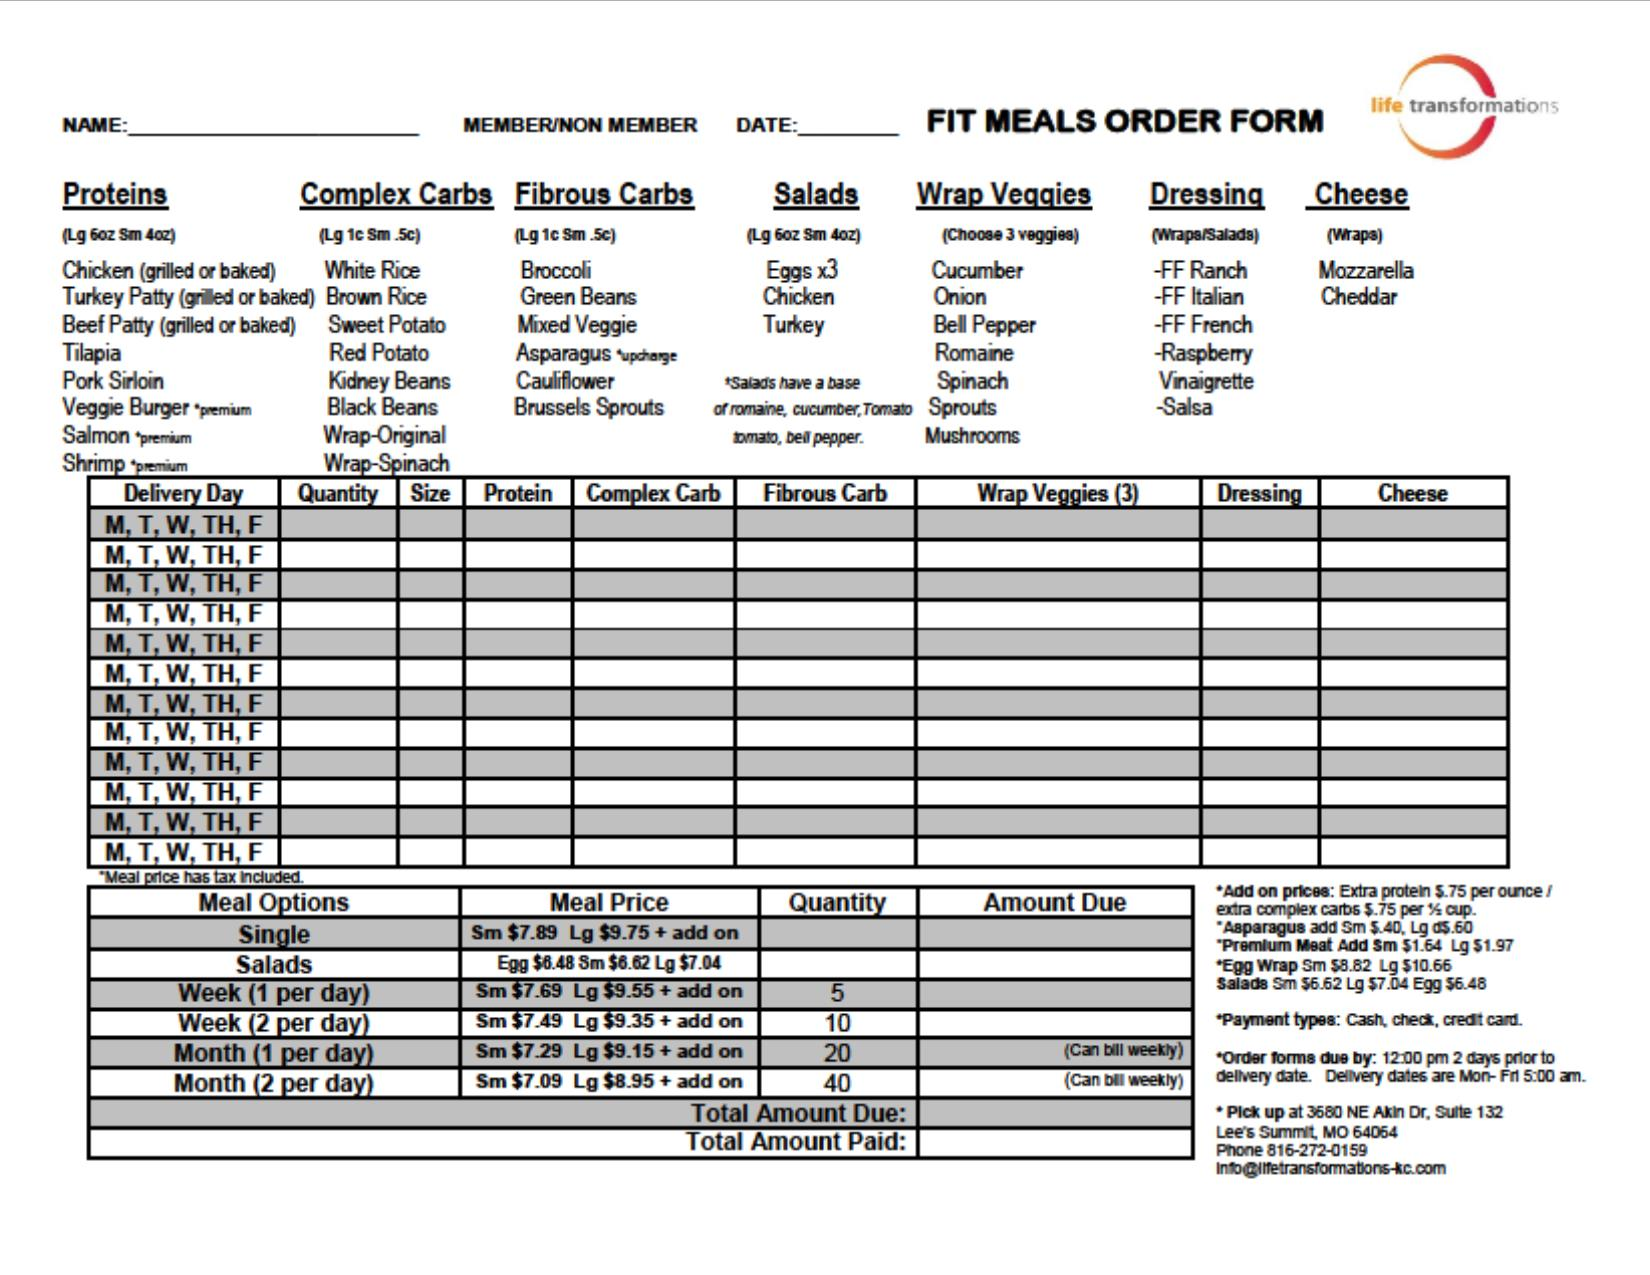 Fit meals life transformations for Food pre order form template